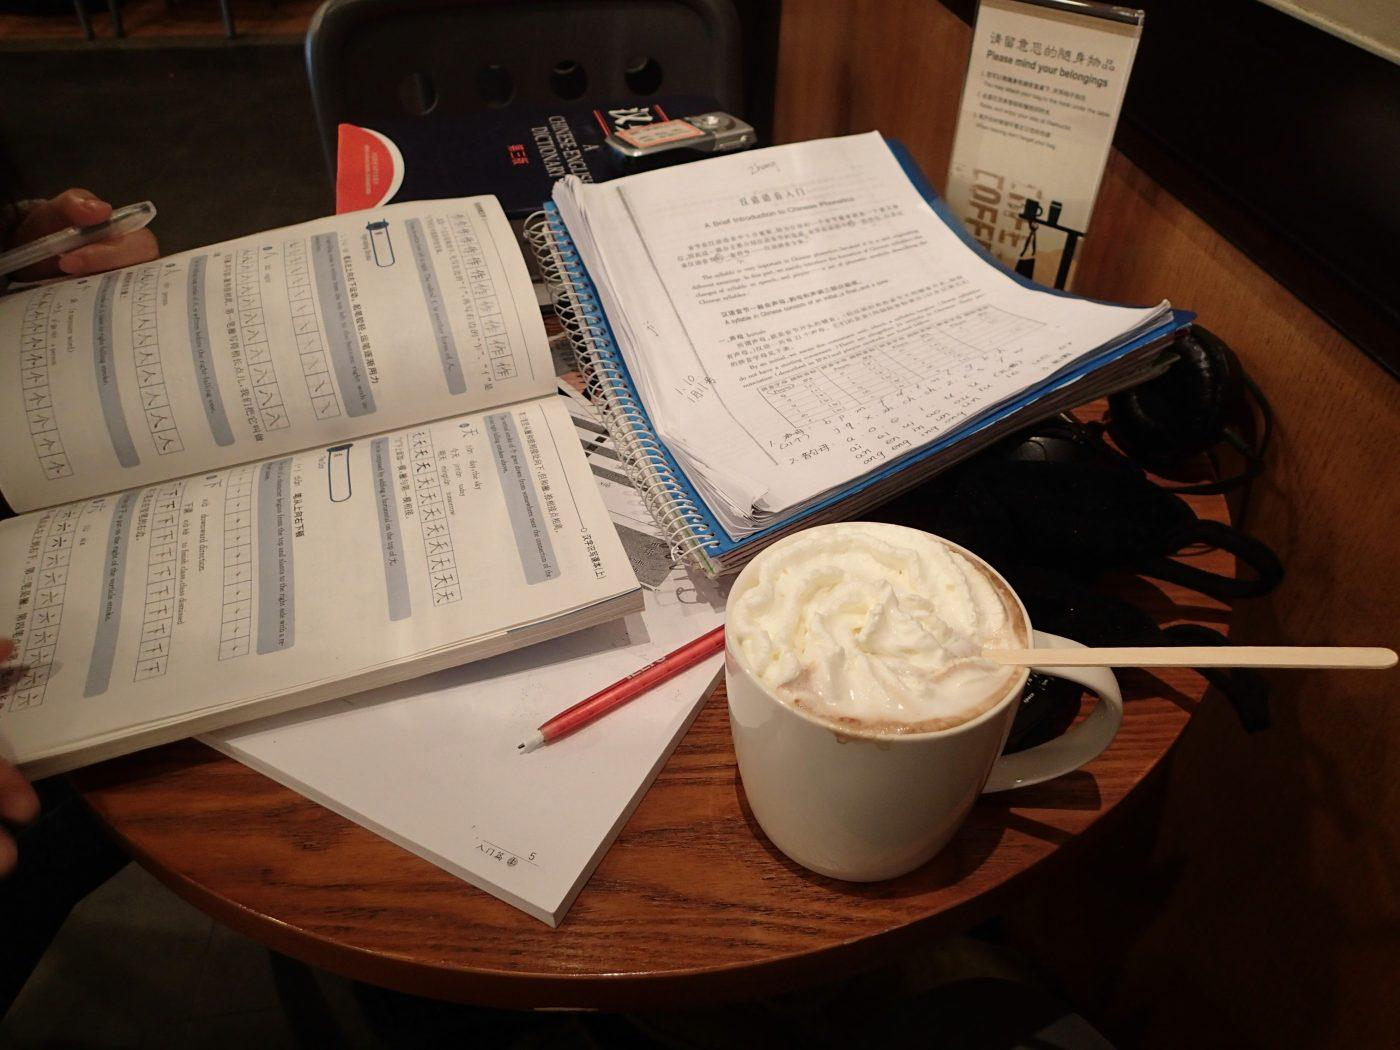 study books and starbucks coffee